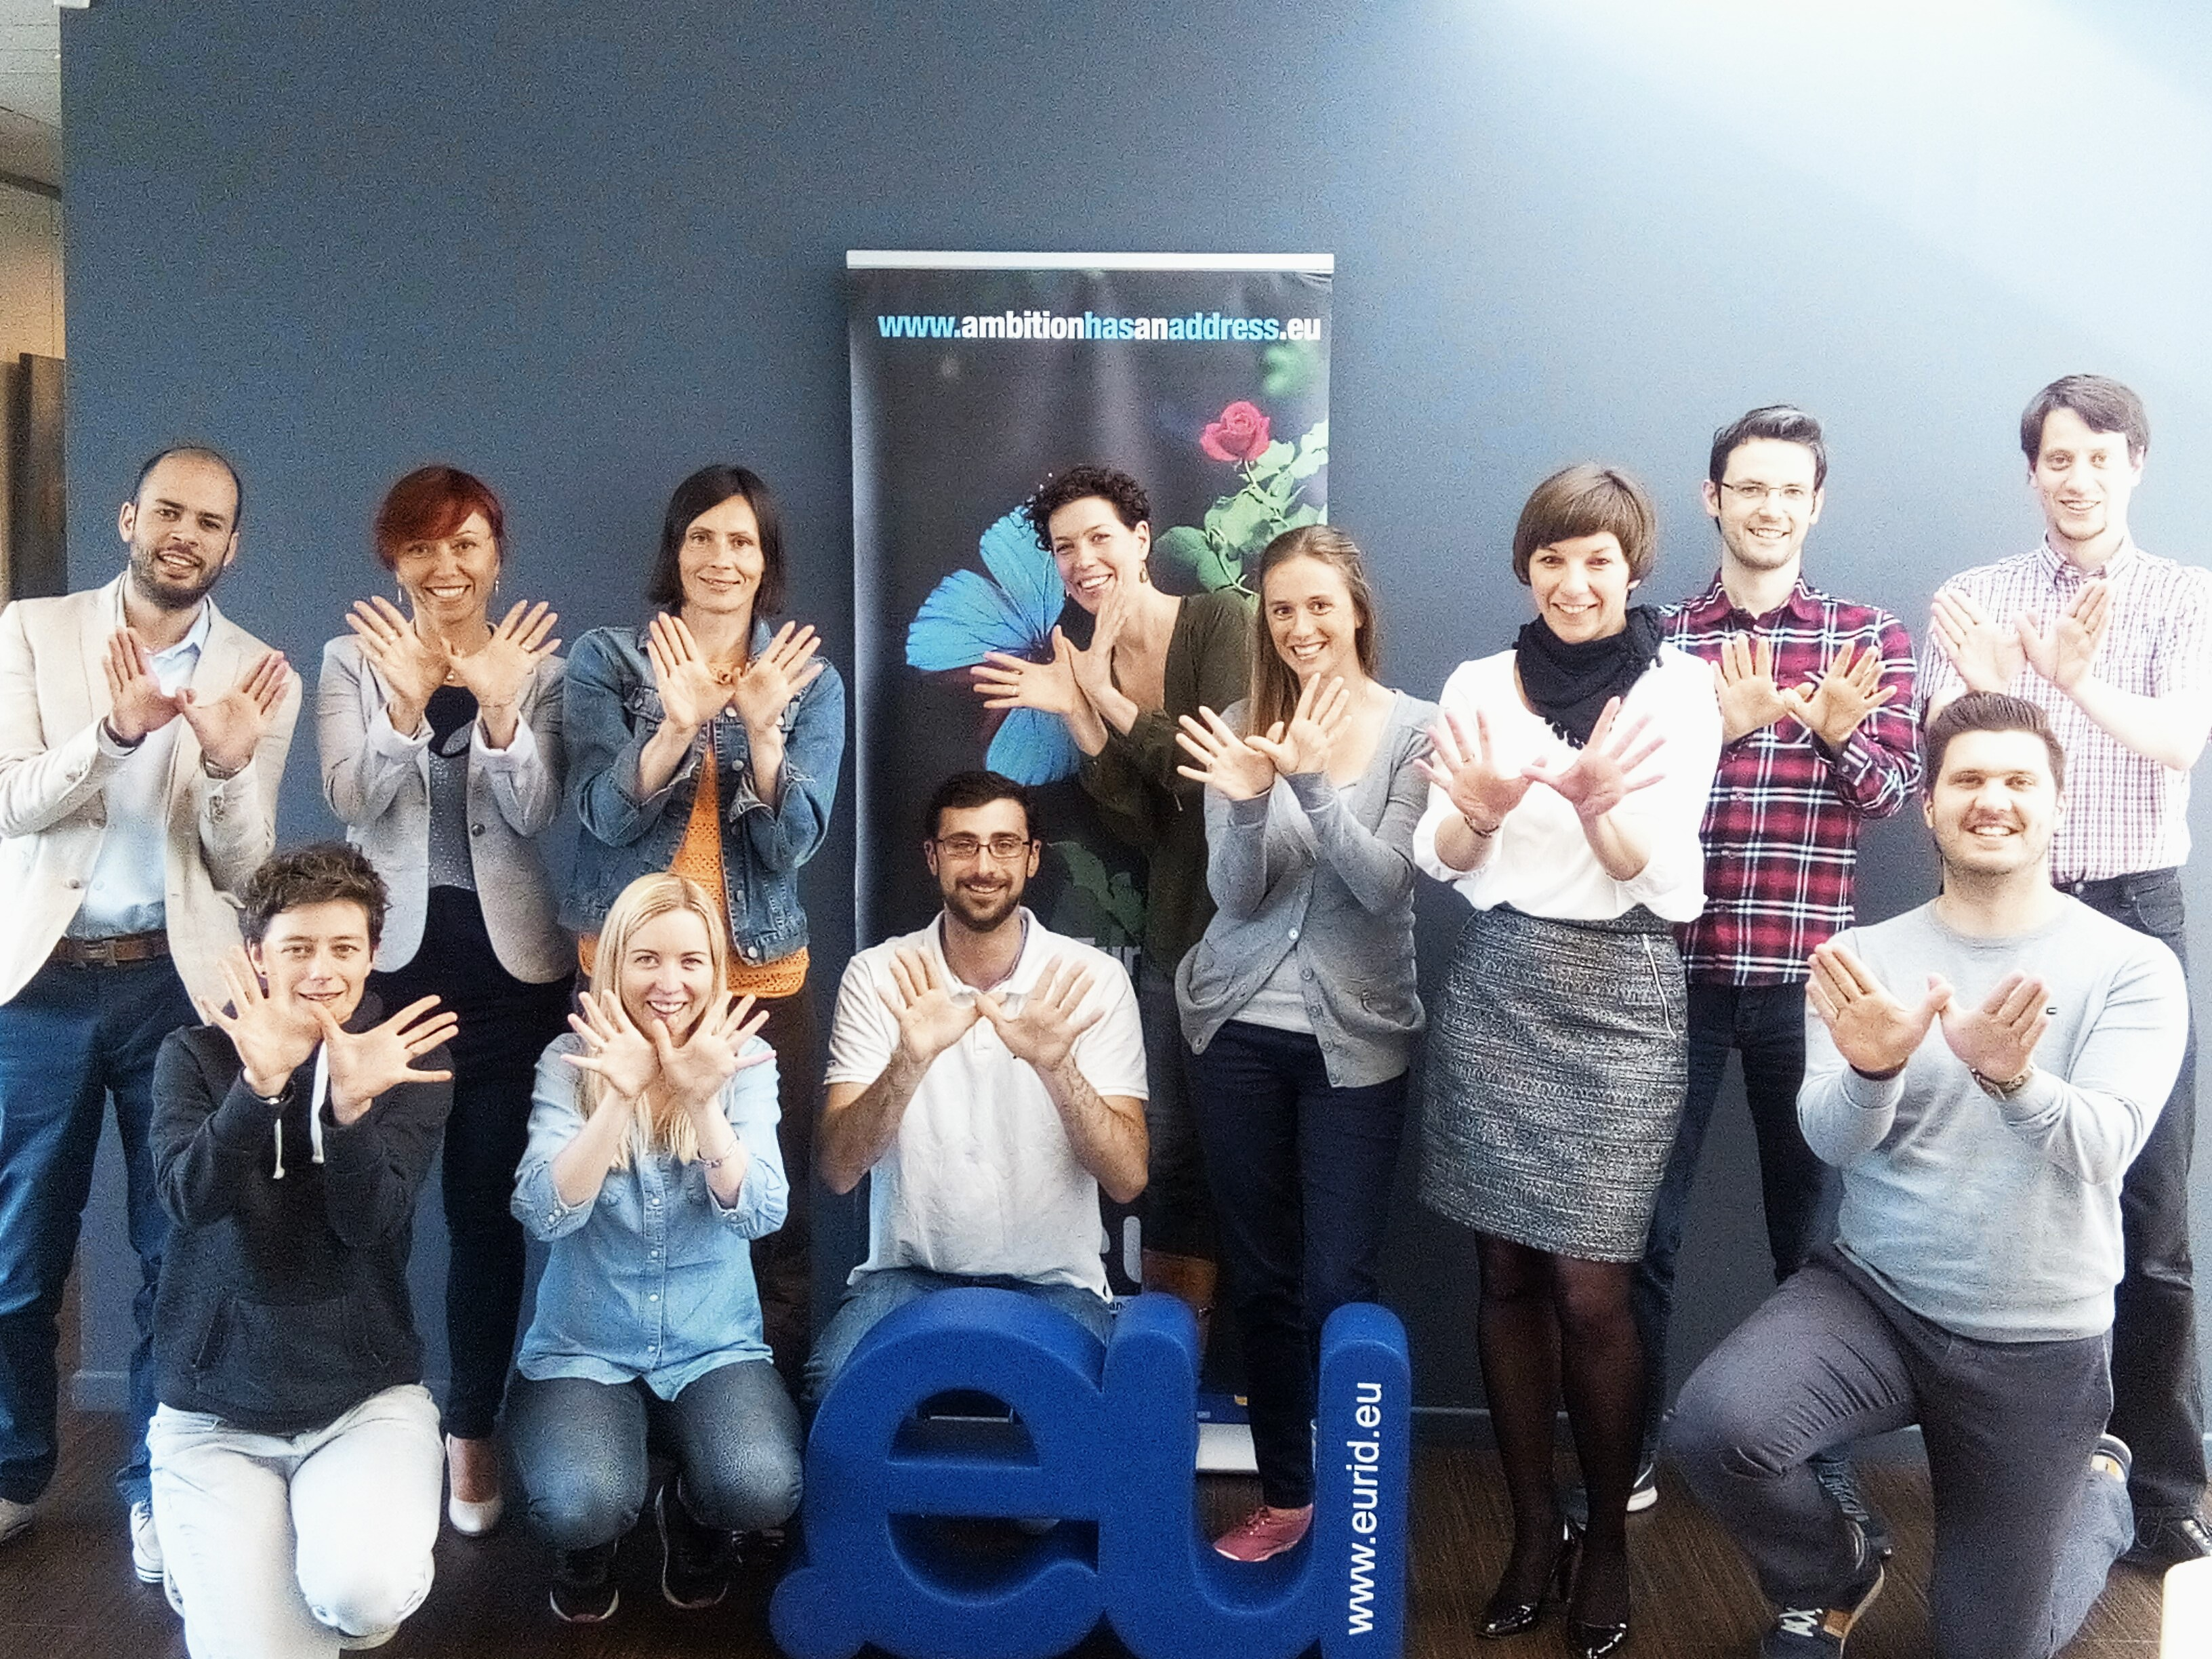 The @EUregistry supporting #natura2000day. Join the butterfly effect: www.natura2000day.eu